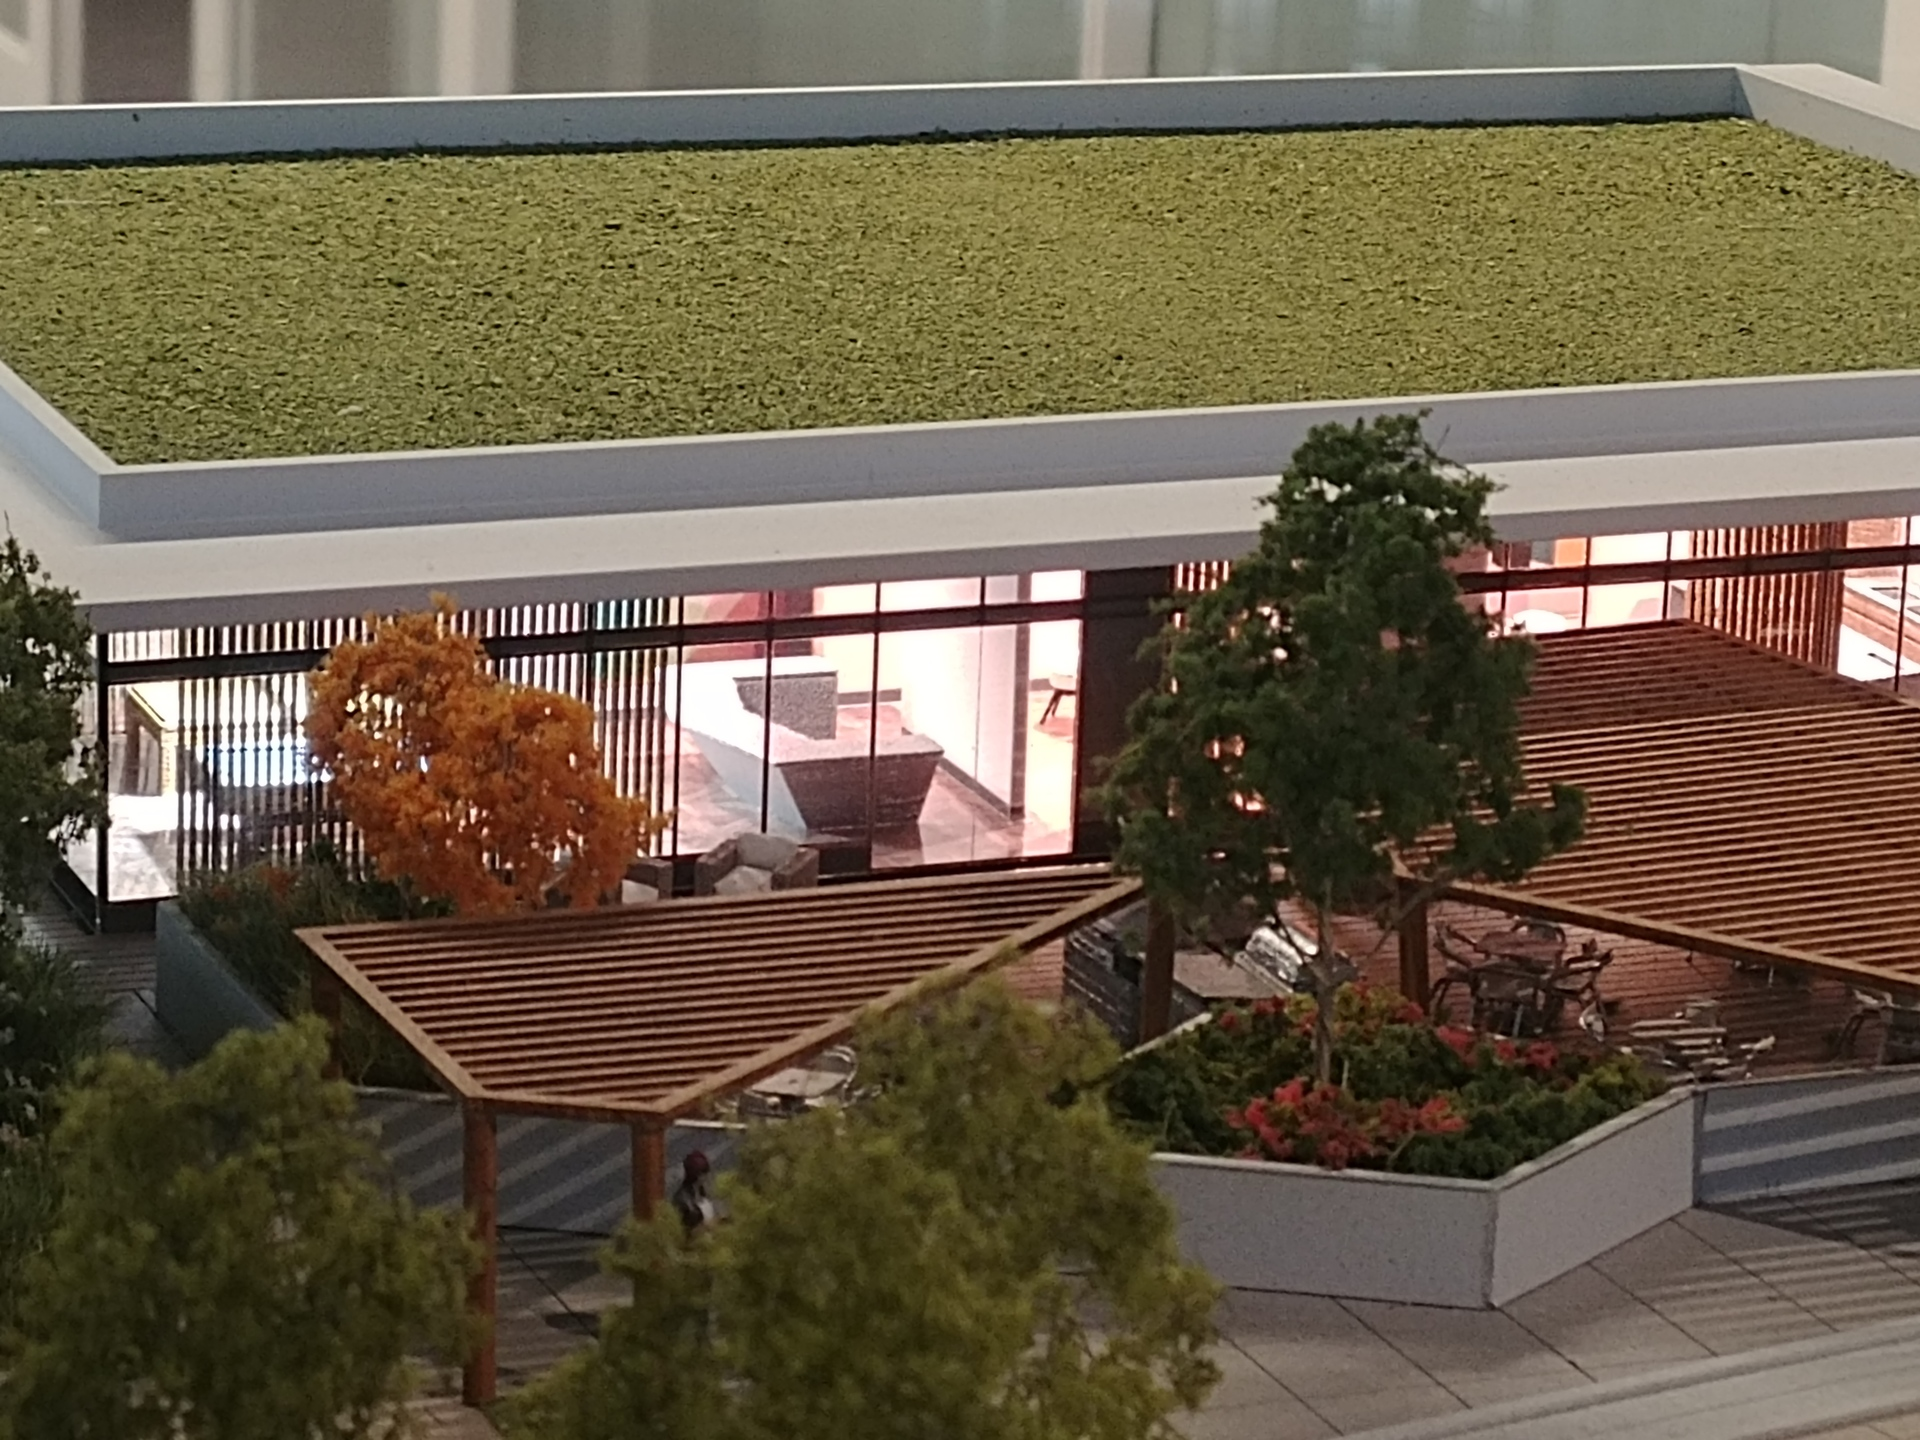 soco-podium-amenity-area-showing-terrace at SOCO (319 North Road, Coquitlam West, Coquitlam)